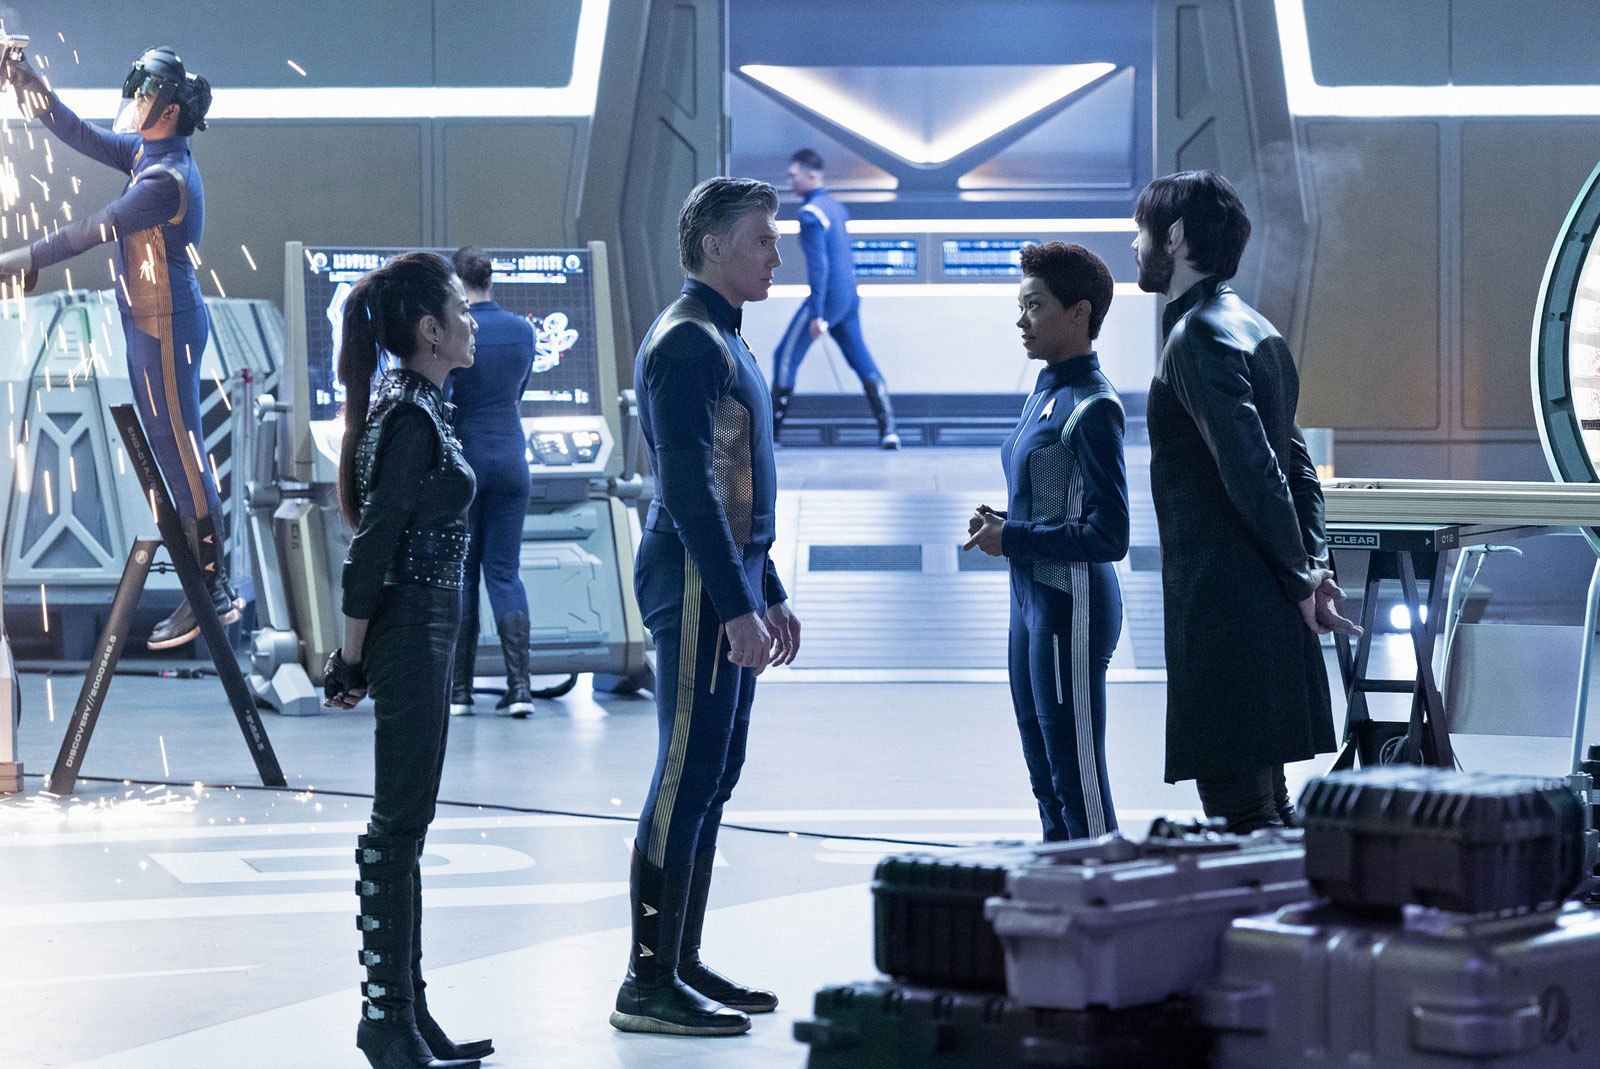 Michelle Yeoh as Philippa Georgiou, Anson Mount as Captain Christopher Pike, Sonequa Martin-Green as Michael Burnham and Ethan Peck as Spock